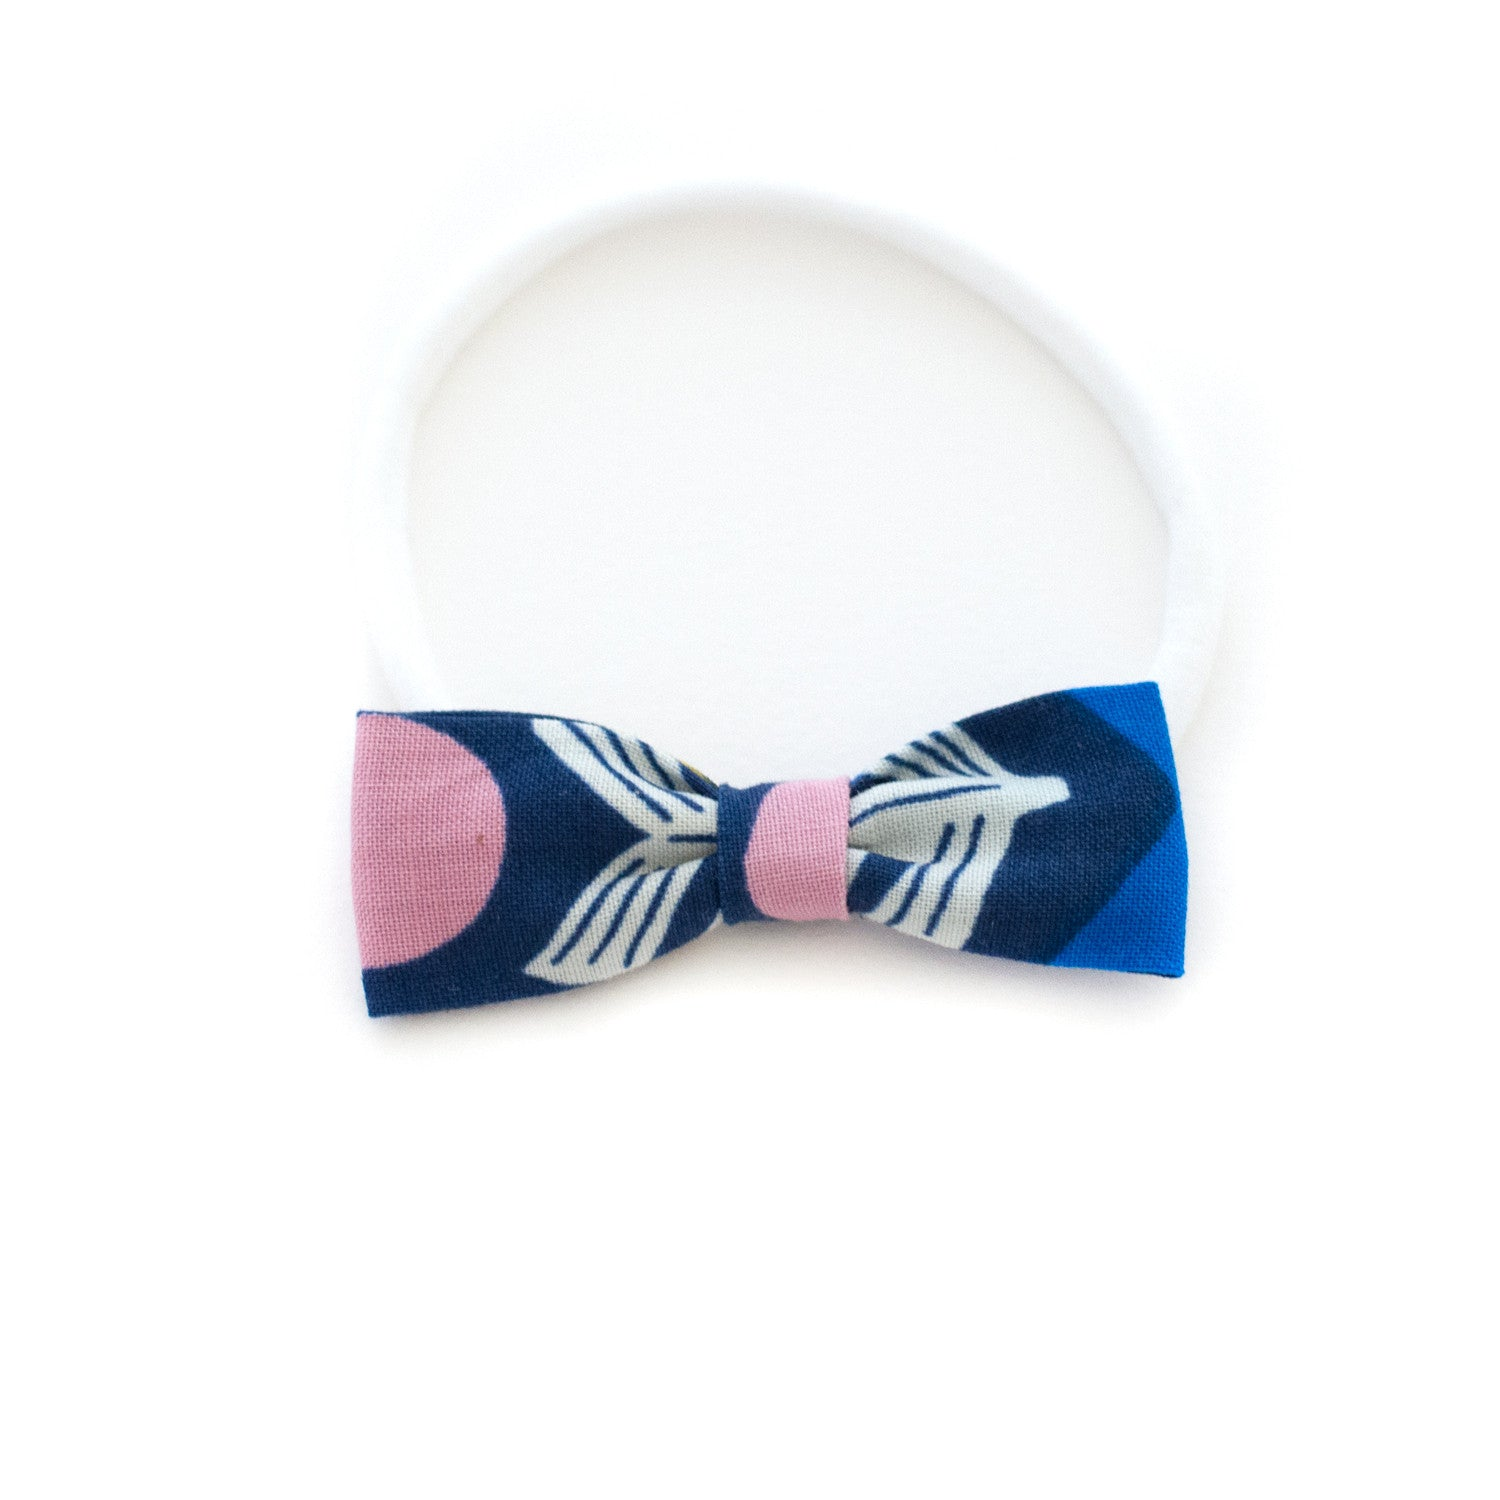 Navy Abstract Floral Headband for Newborns to Toddlers - soft elastic headband that doesn't leave creases